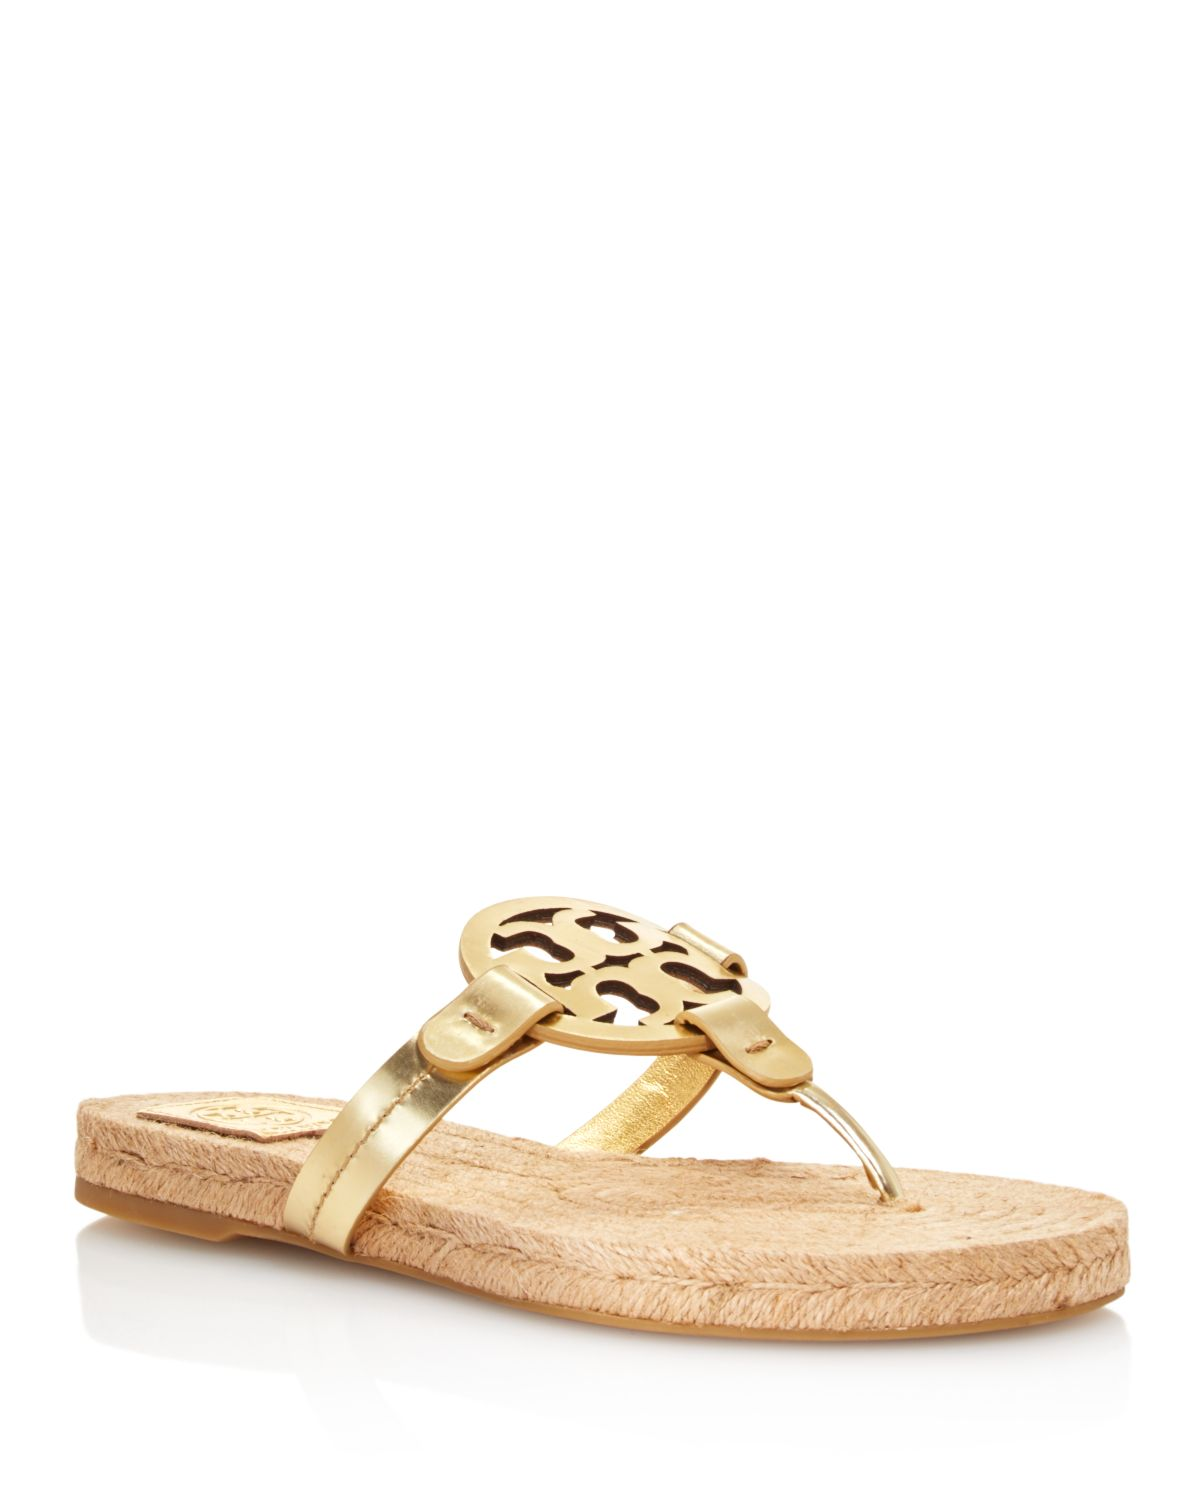 Women's Miller Leather Thong Espadrille Sandals by Tory Burch